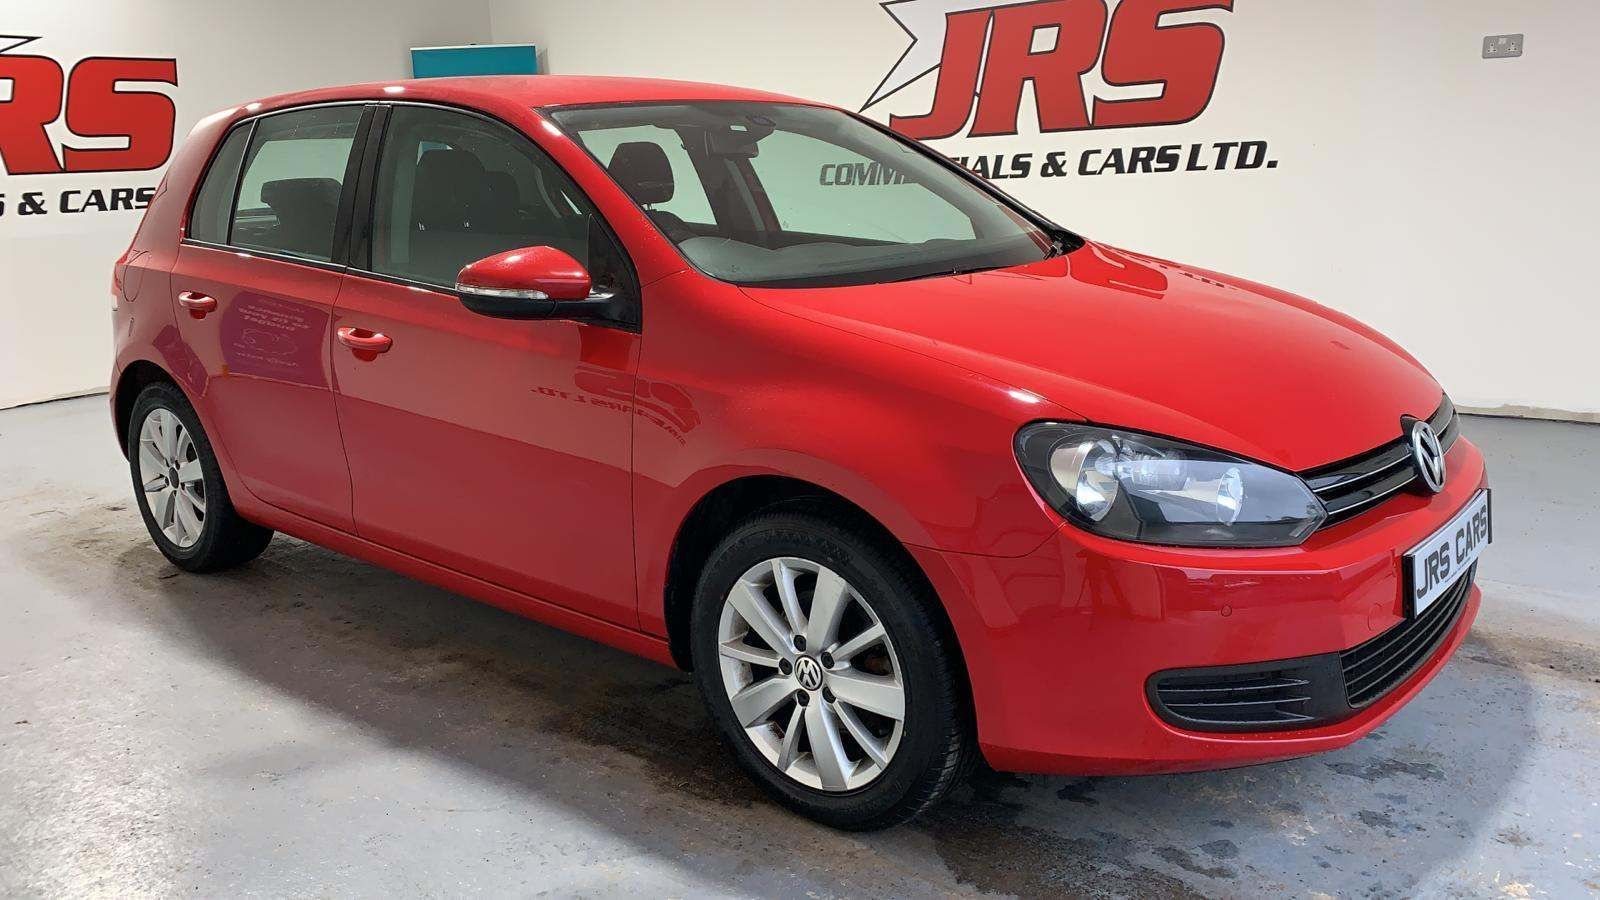 2012 VOLKSWAGEN Golf 1.6 TDI Match Diesel Manual **Tornado Red-£30 Road Tax** – J R S Commercials And Cars Dungannon